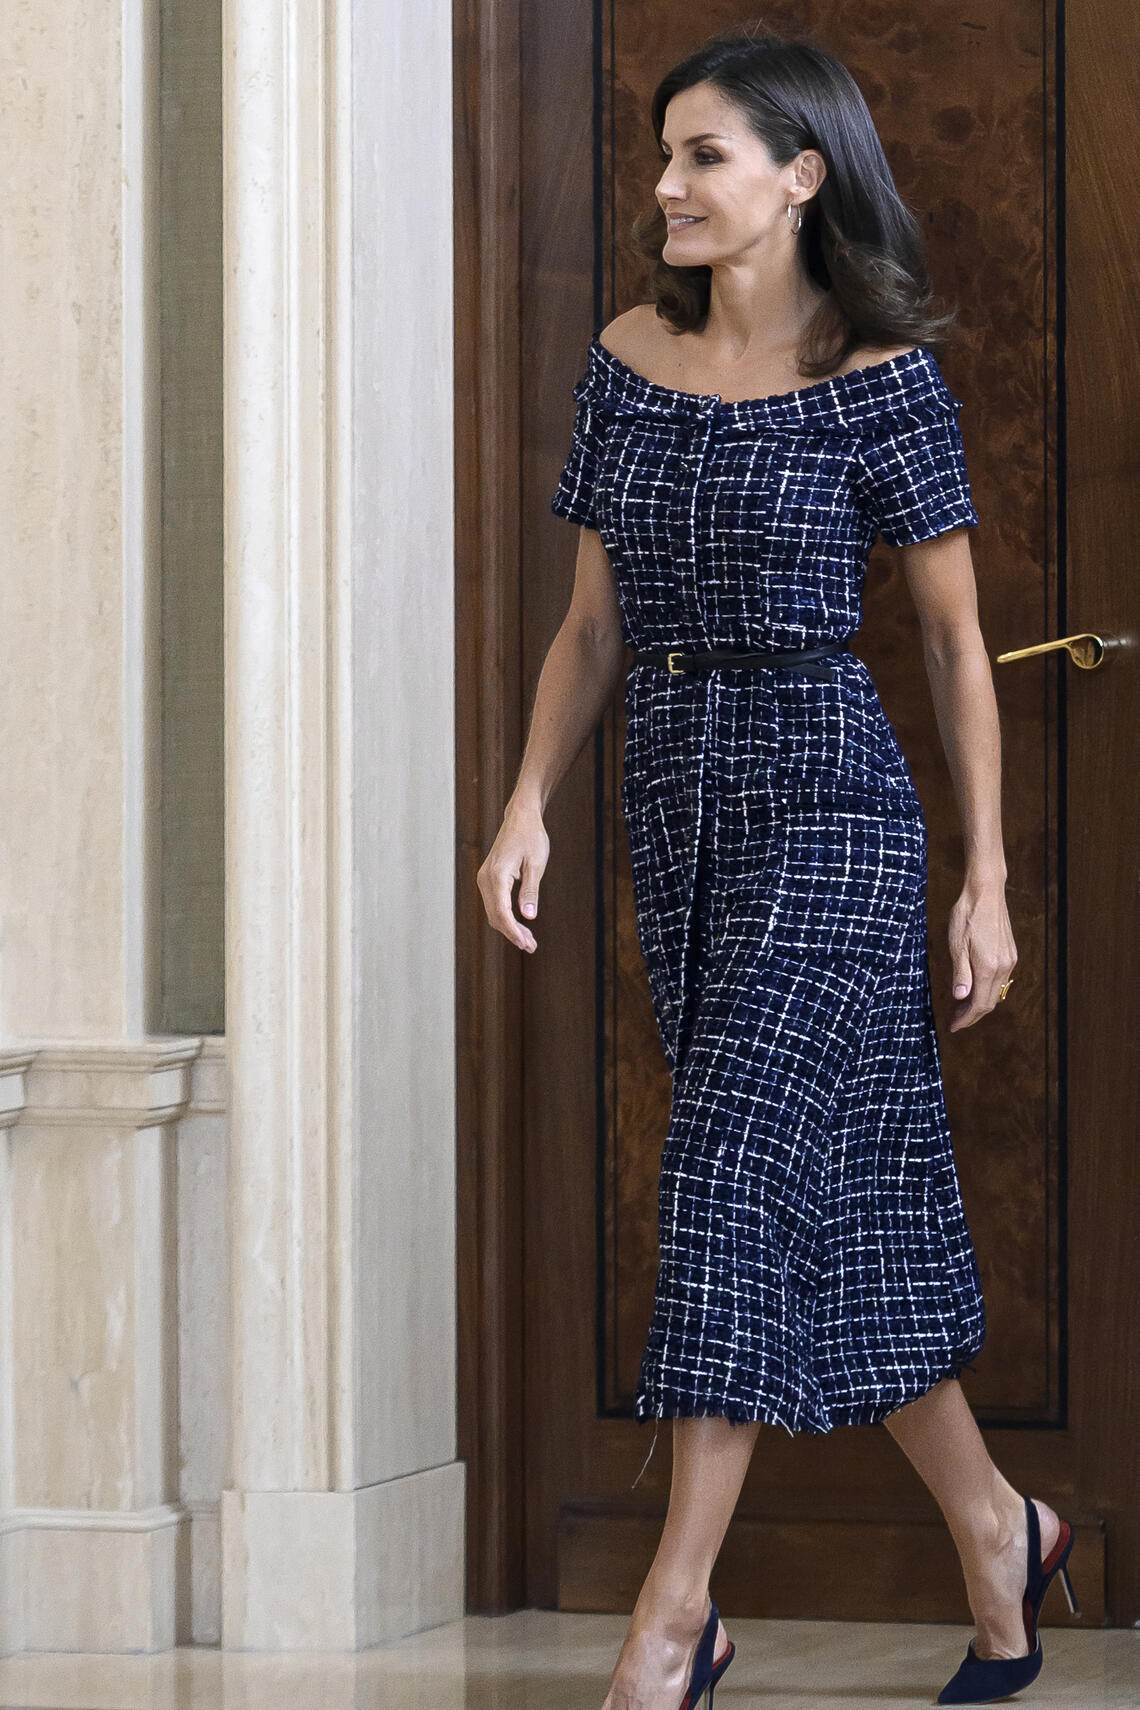 MADRID, SPAIN - JULY 16: Queen Letizia of Spain attends audiences at Zarzuela Palace on July 16, 2019 in Madrid, Spain. (Photo by Samuel de Roman/Getty Images)